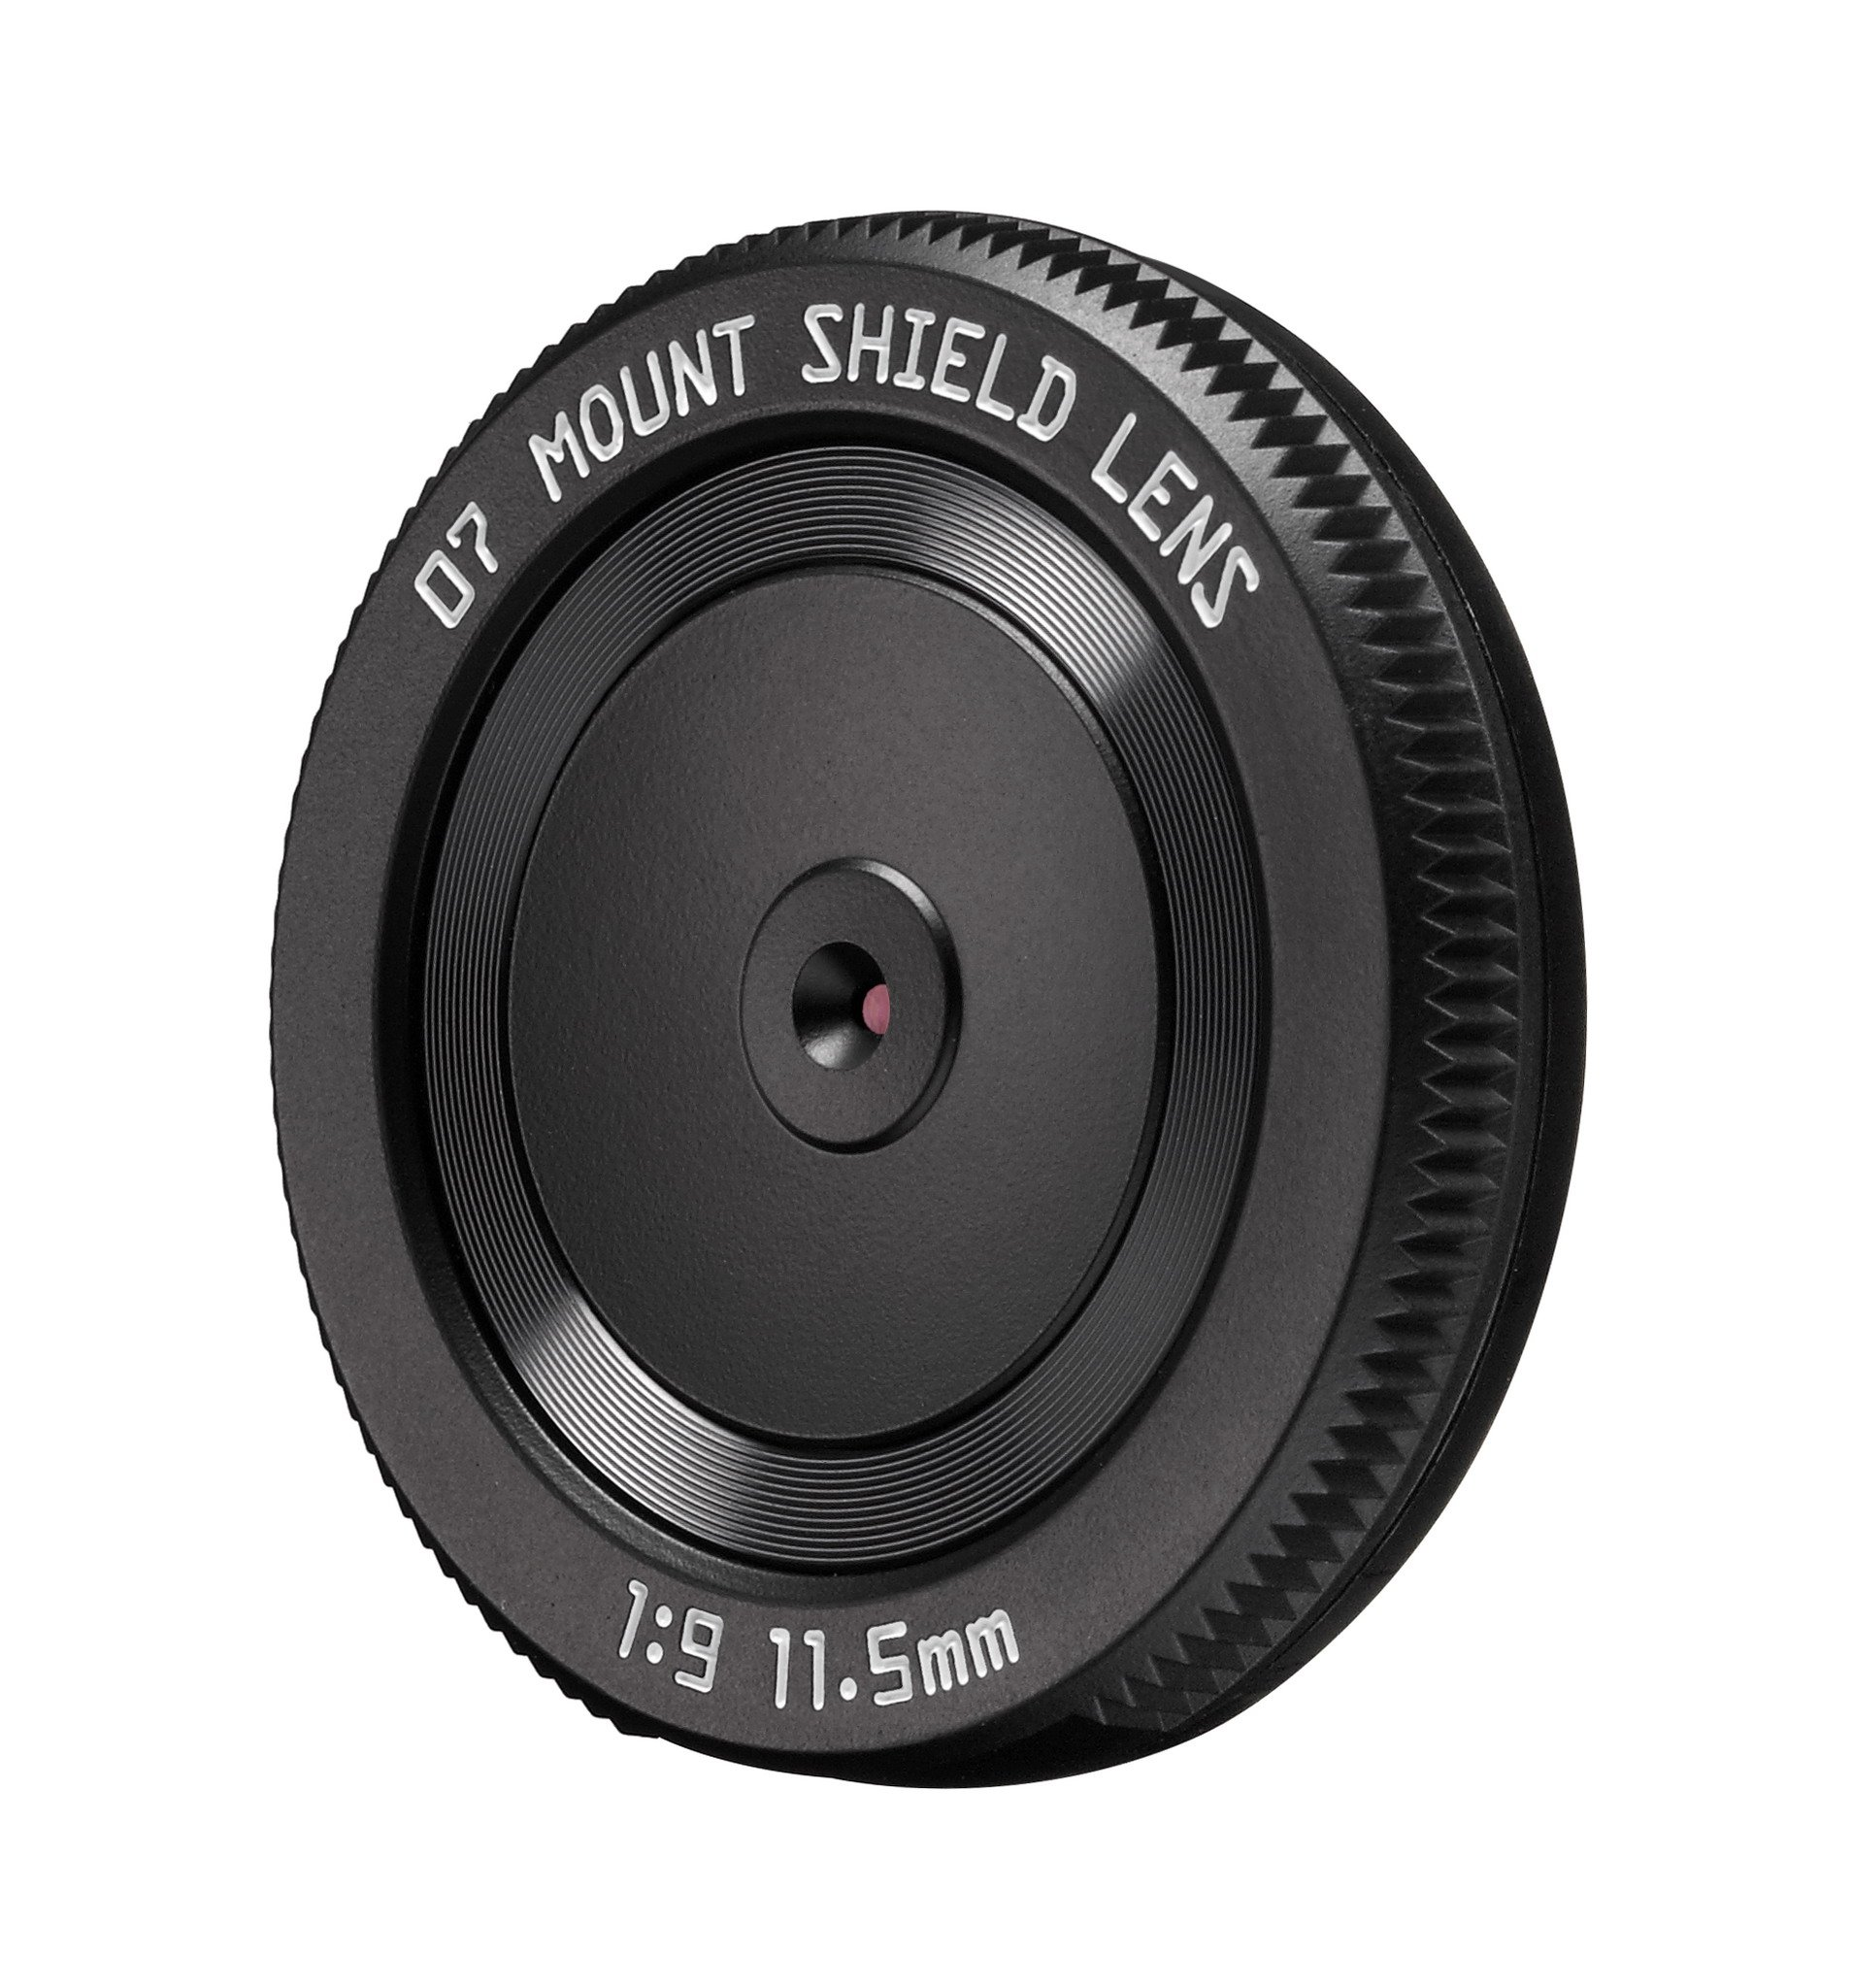 Pentax 07 11.5mm f/9 Mount Shield Lens (53mm - 35mm equivalent), for Q-Series Cameras by Pentax